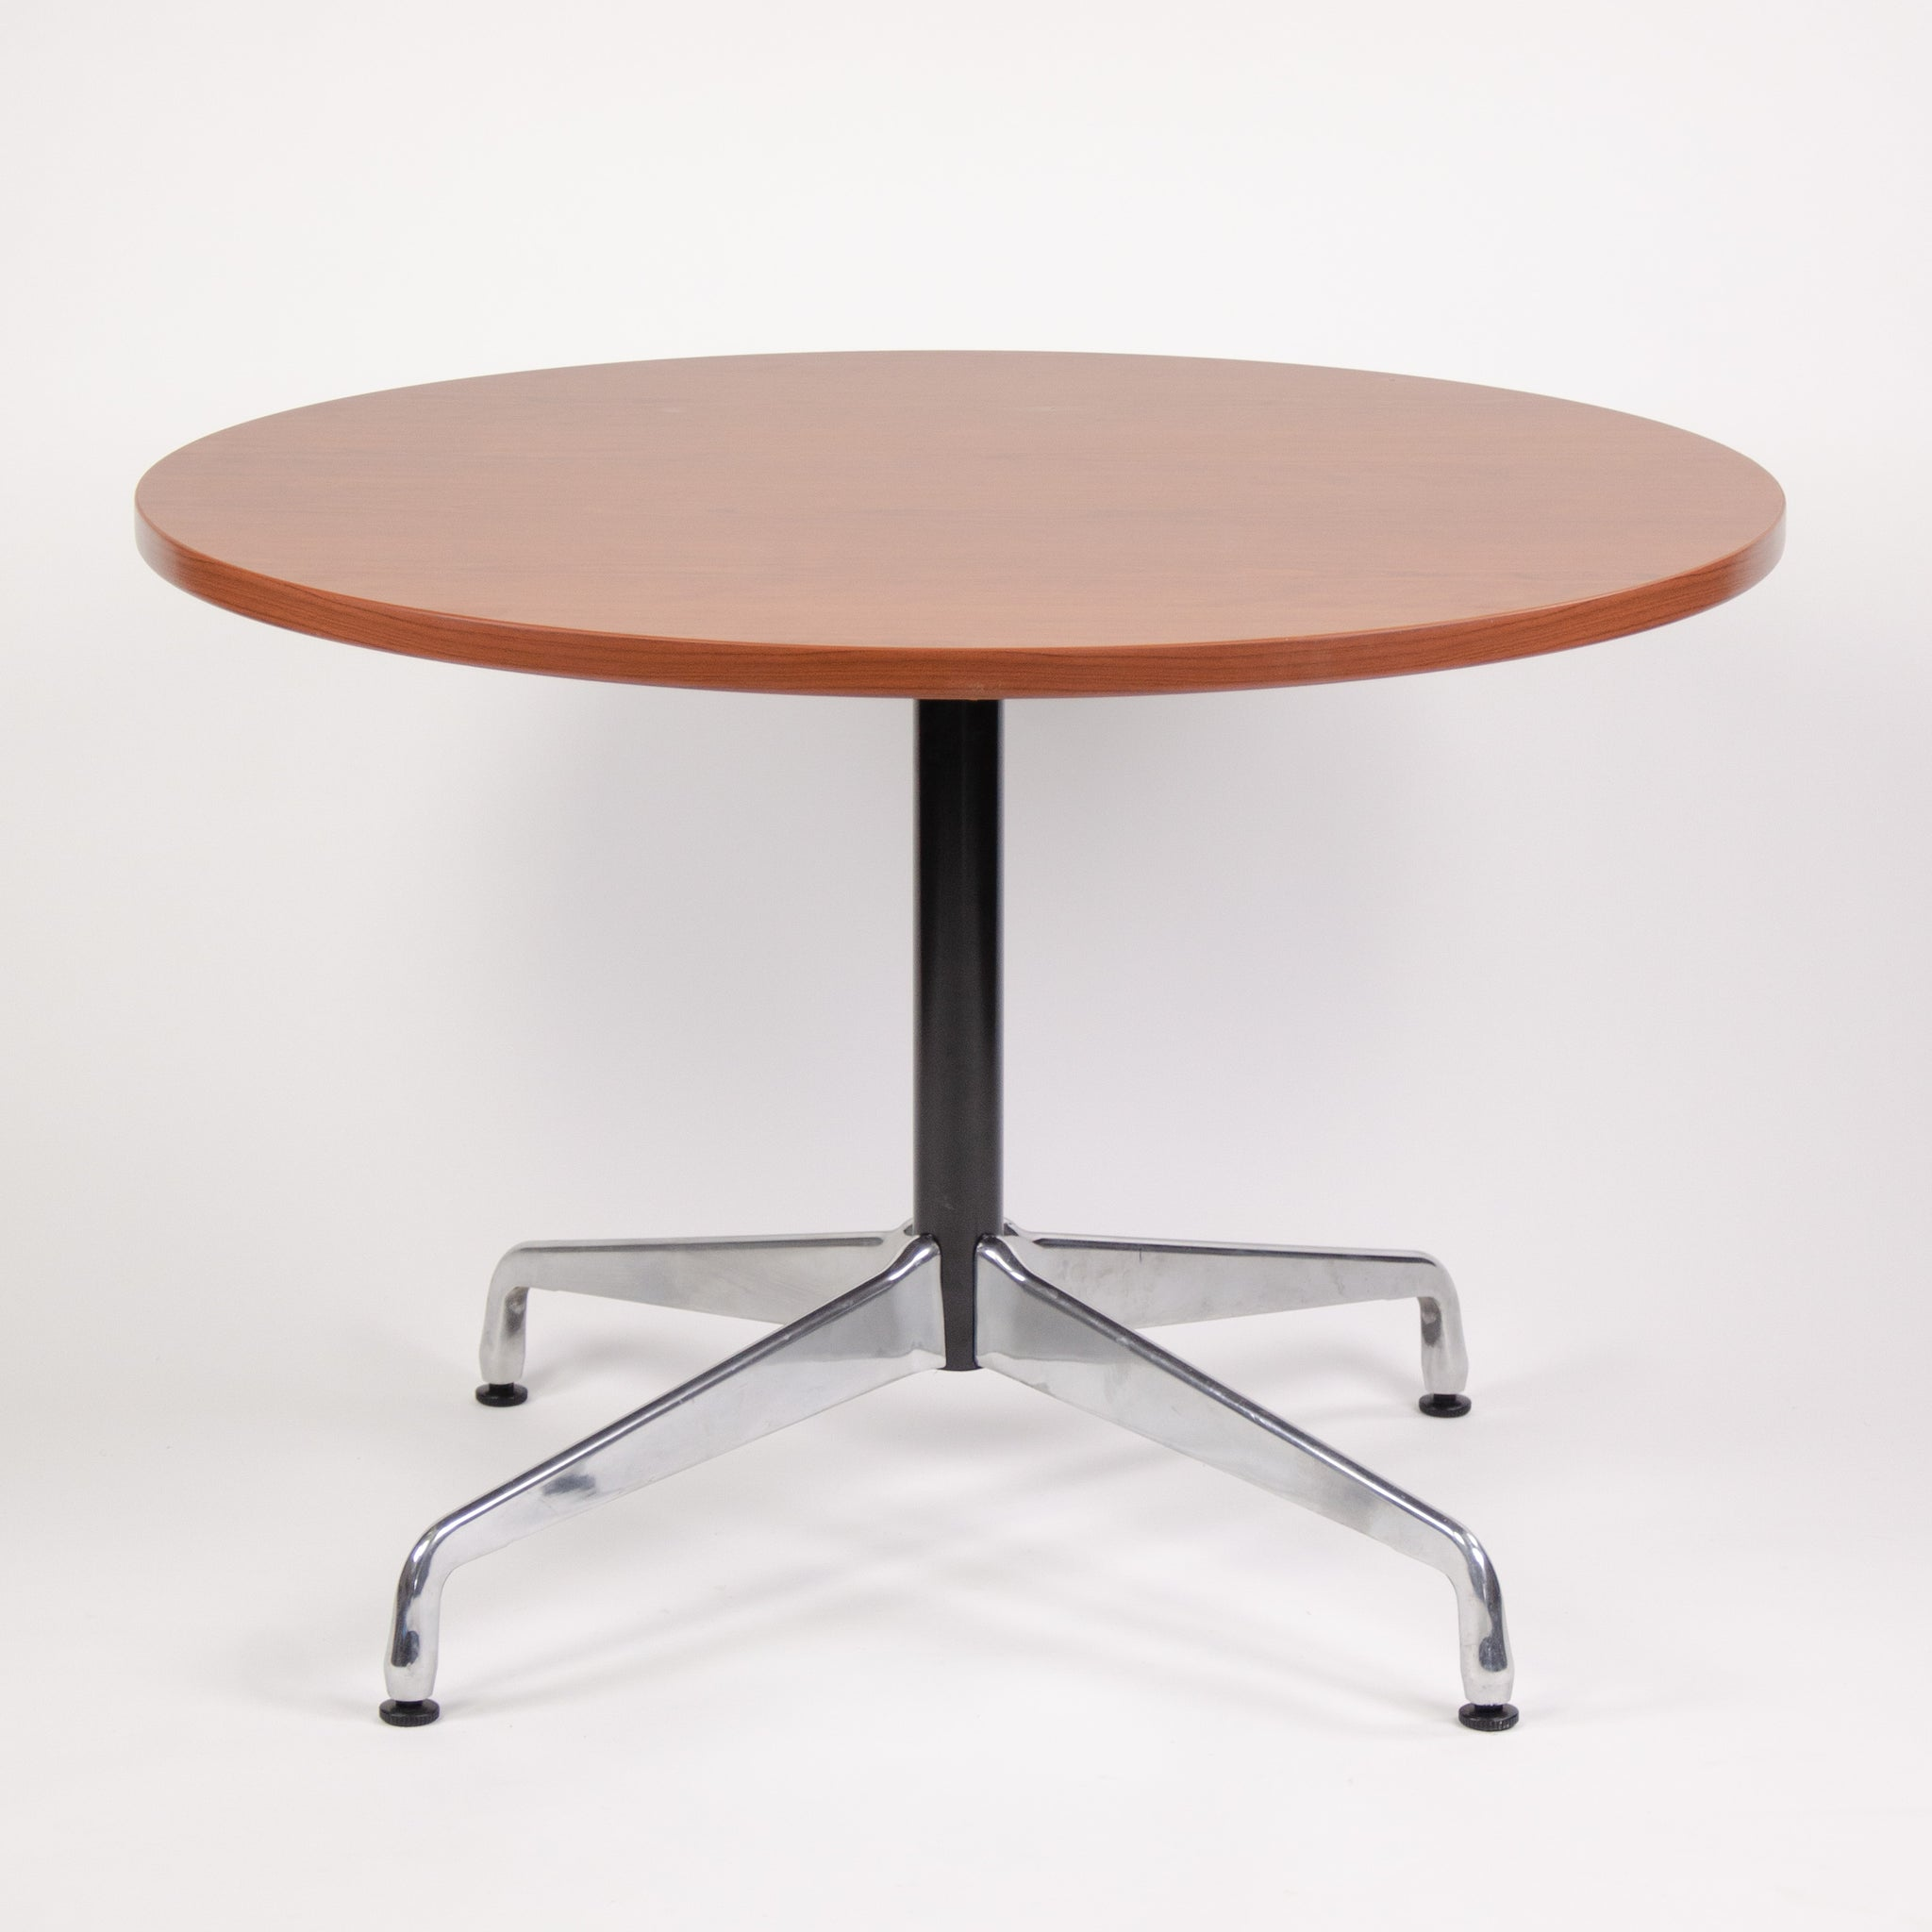 SOLD Eames Herman Miller Aluminum Group Segmented Dining Cafe Conference Table MINT